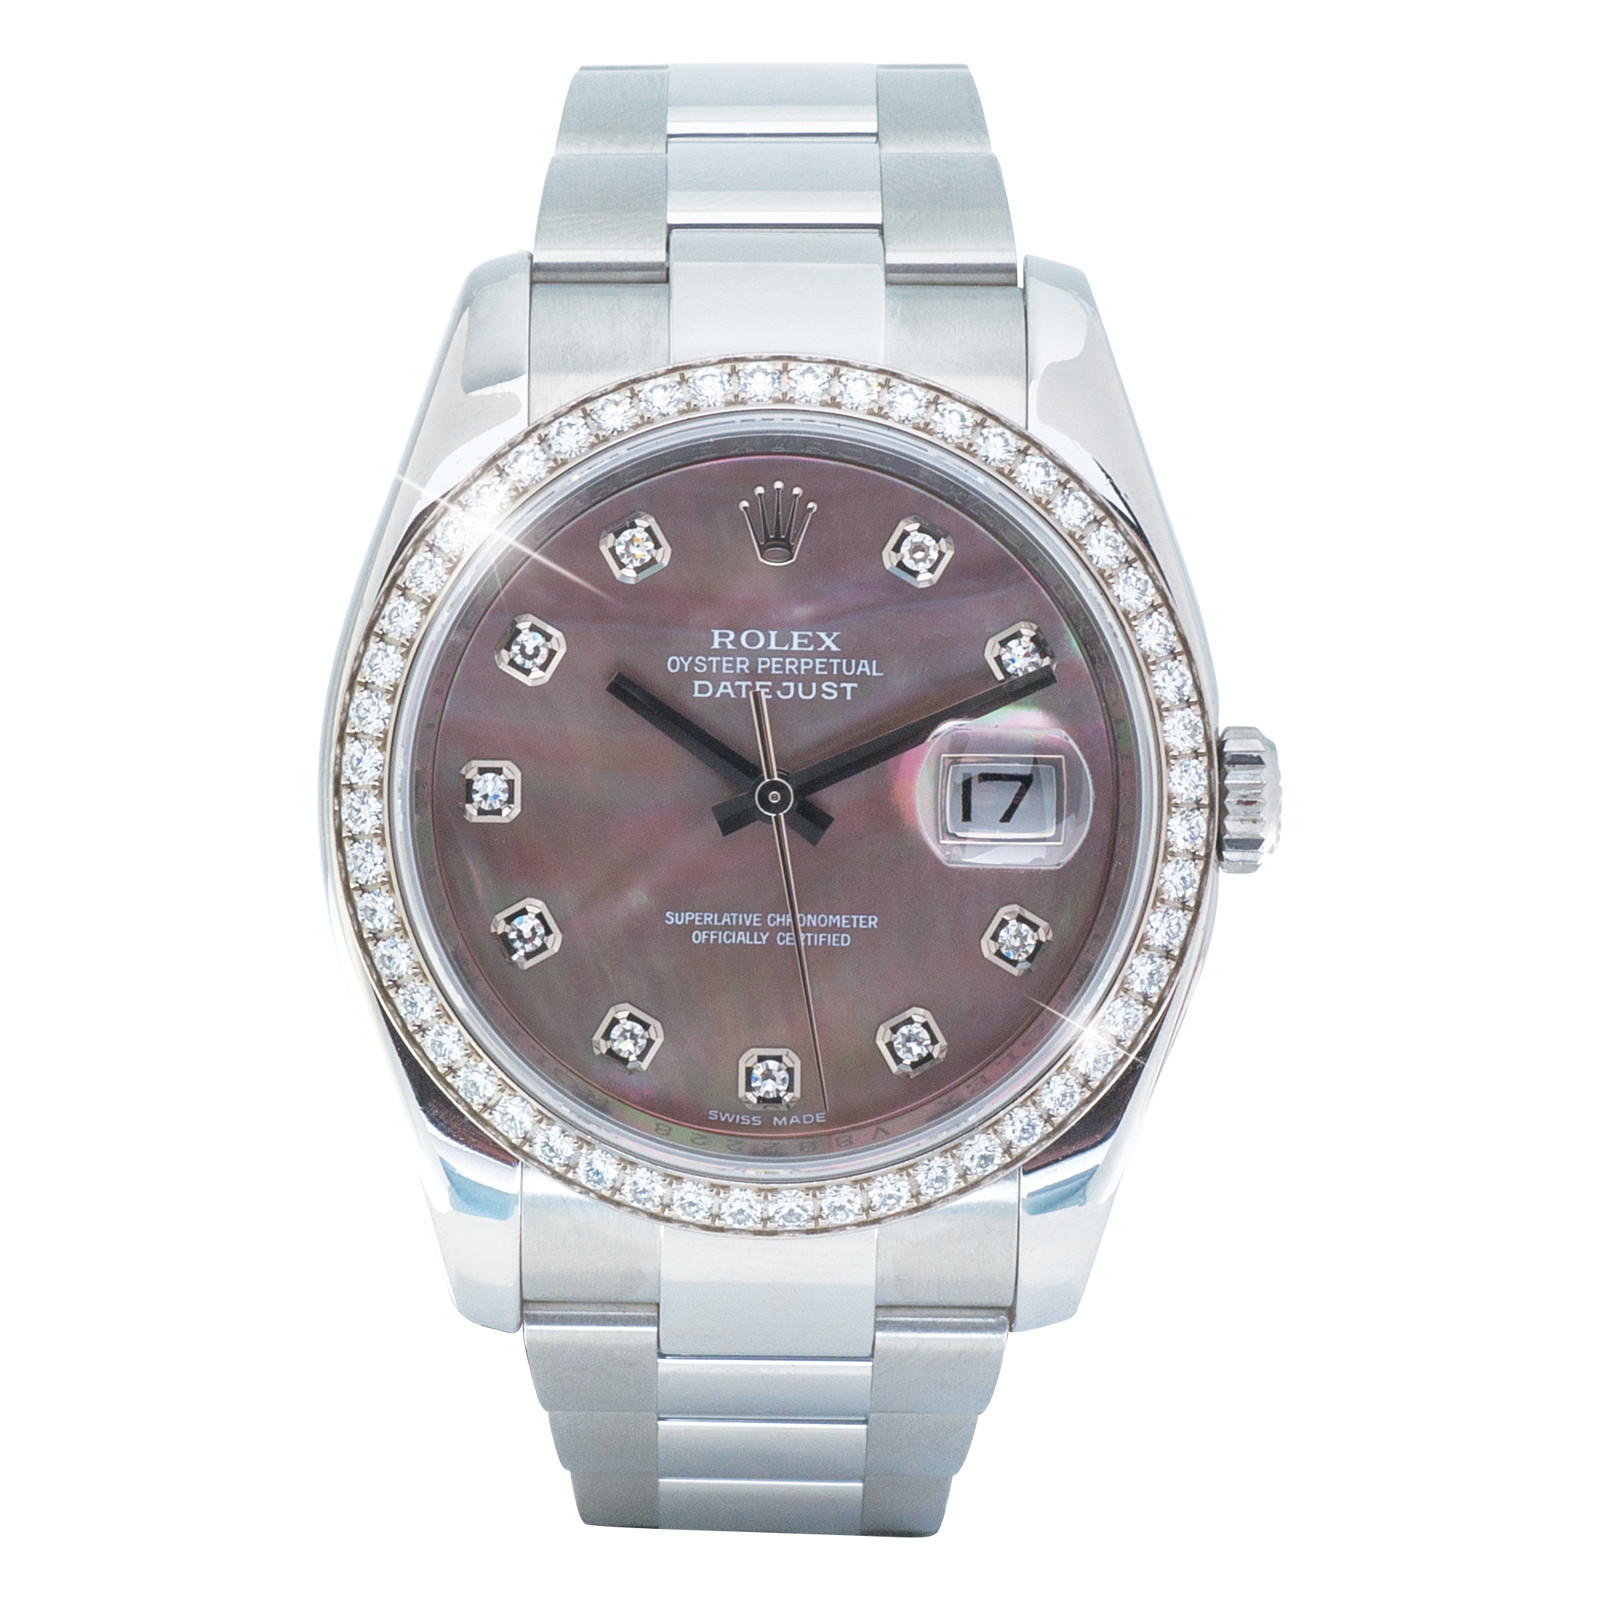 Pre-Owned Midsize Rolex Datejust Watch with MOP Diamond Dial